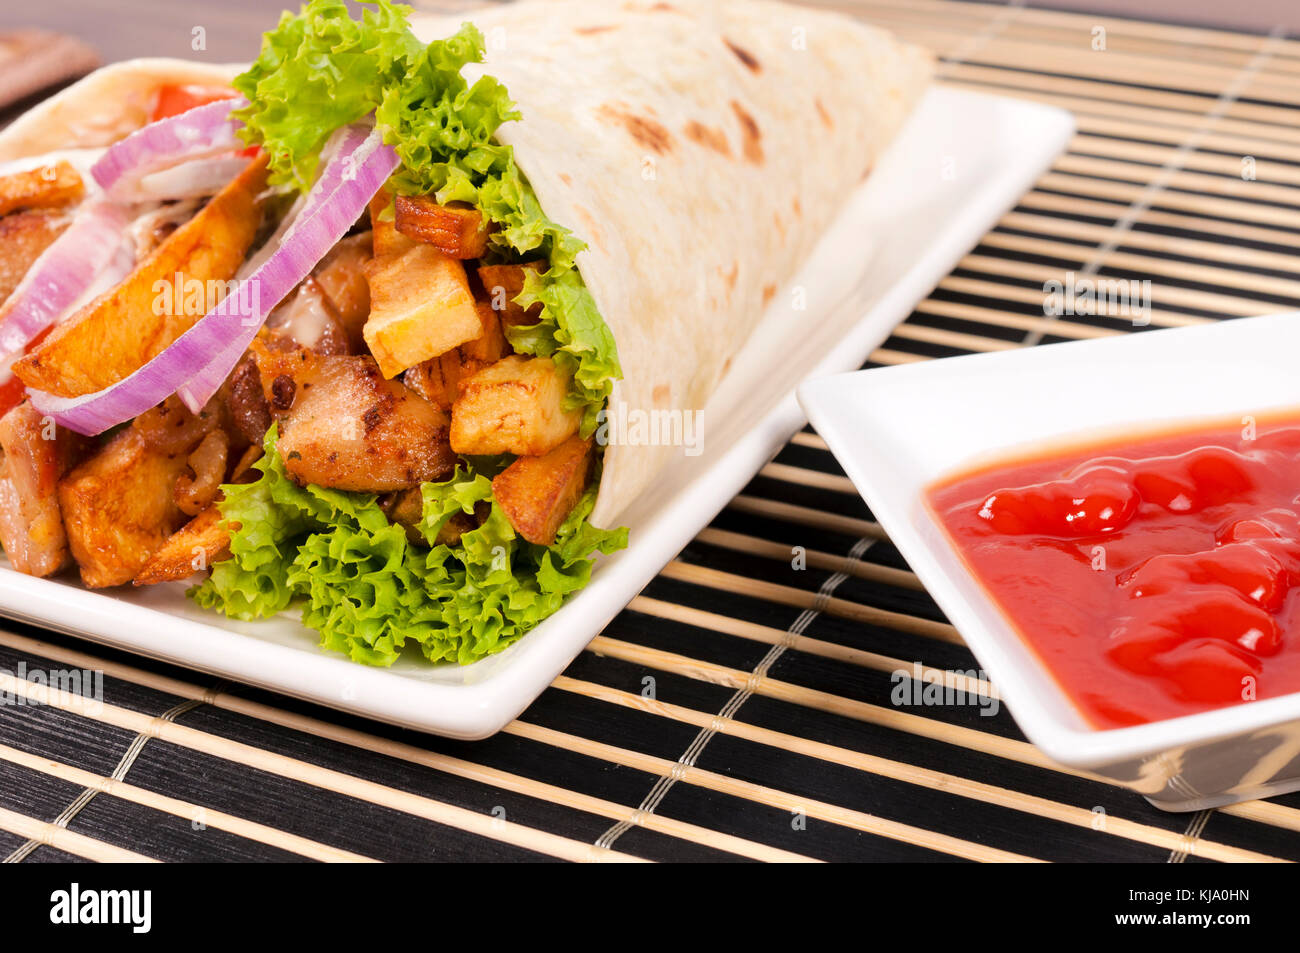 Tasty gyros portion with ketchup - Stock Image